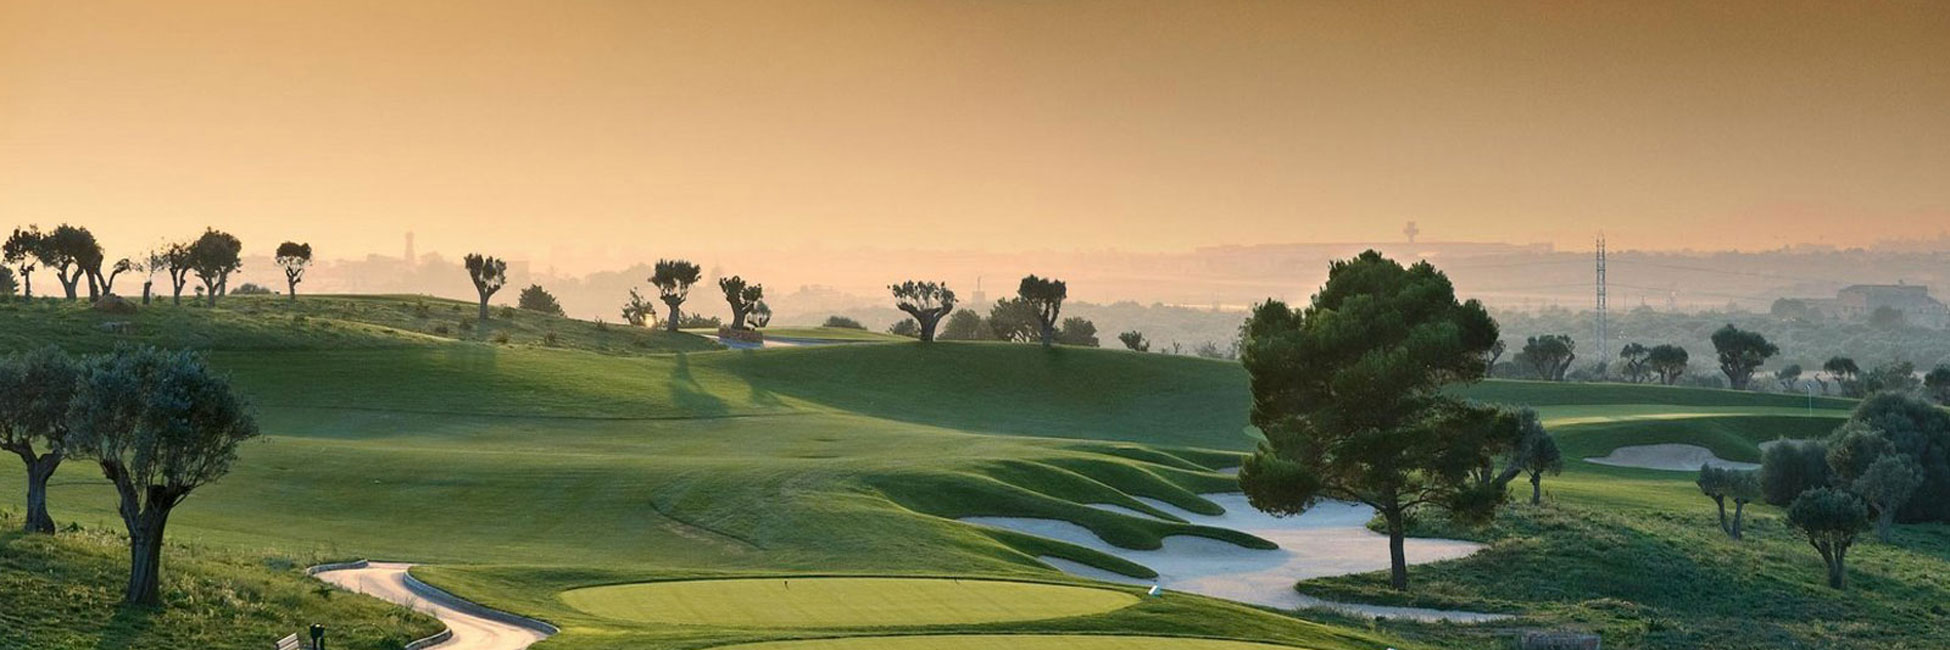 Golf Holidays in Laos